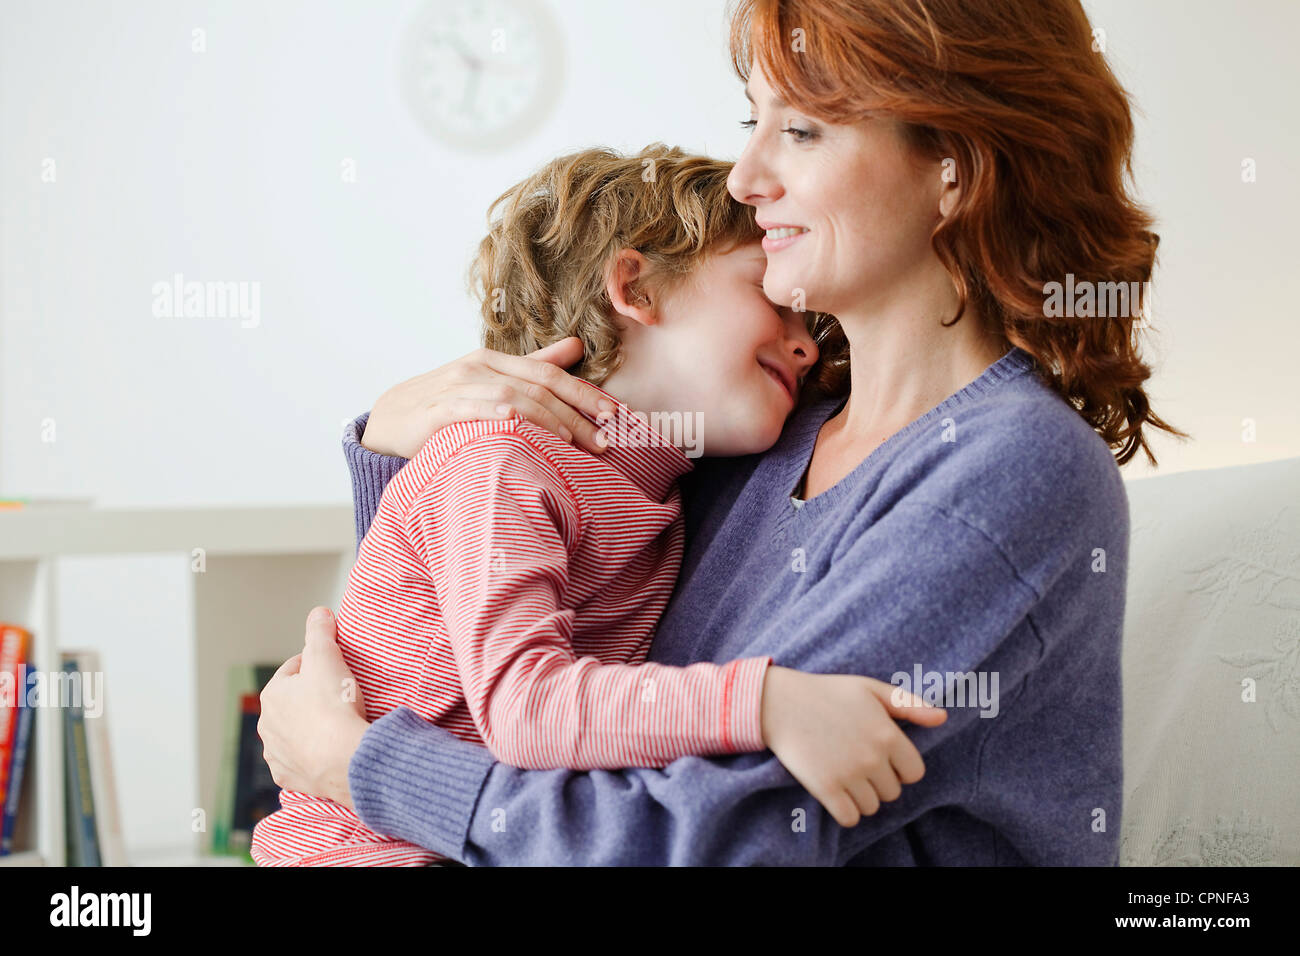 MOTHER & CHILD - Stock Image